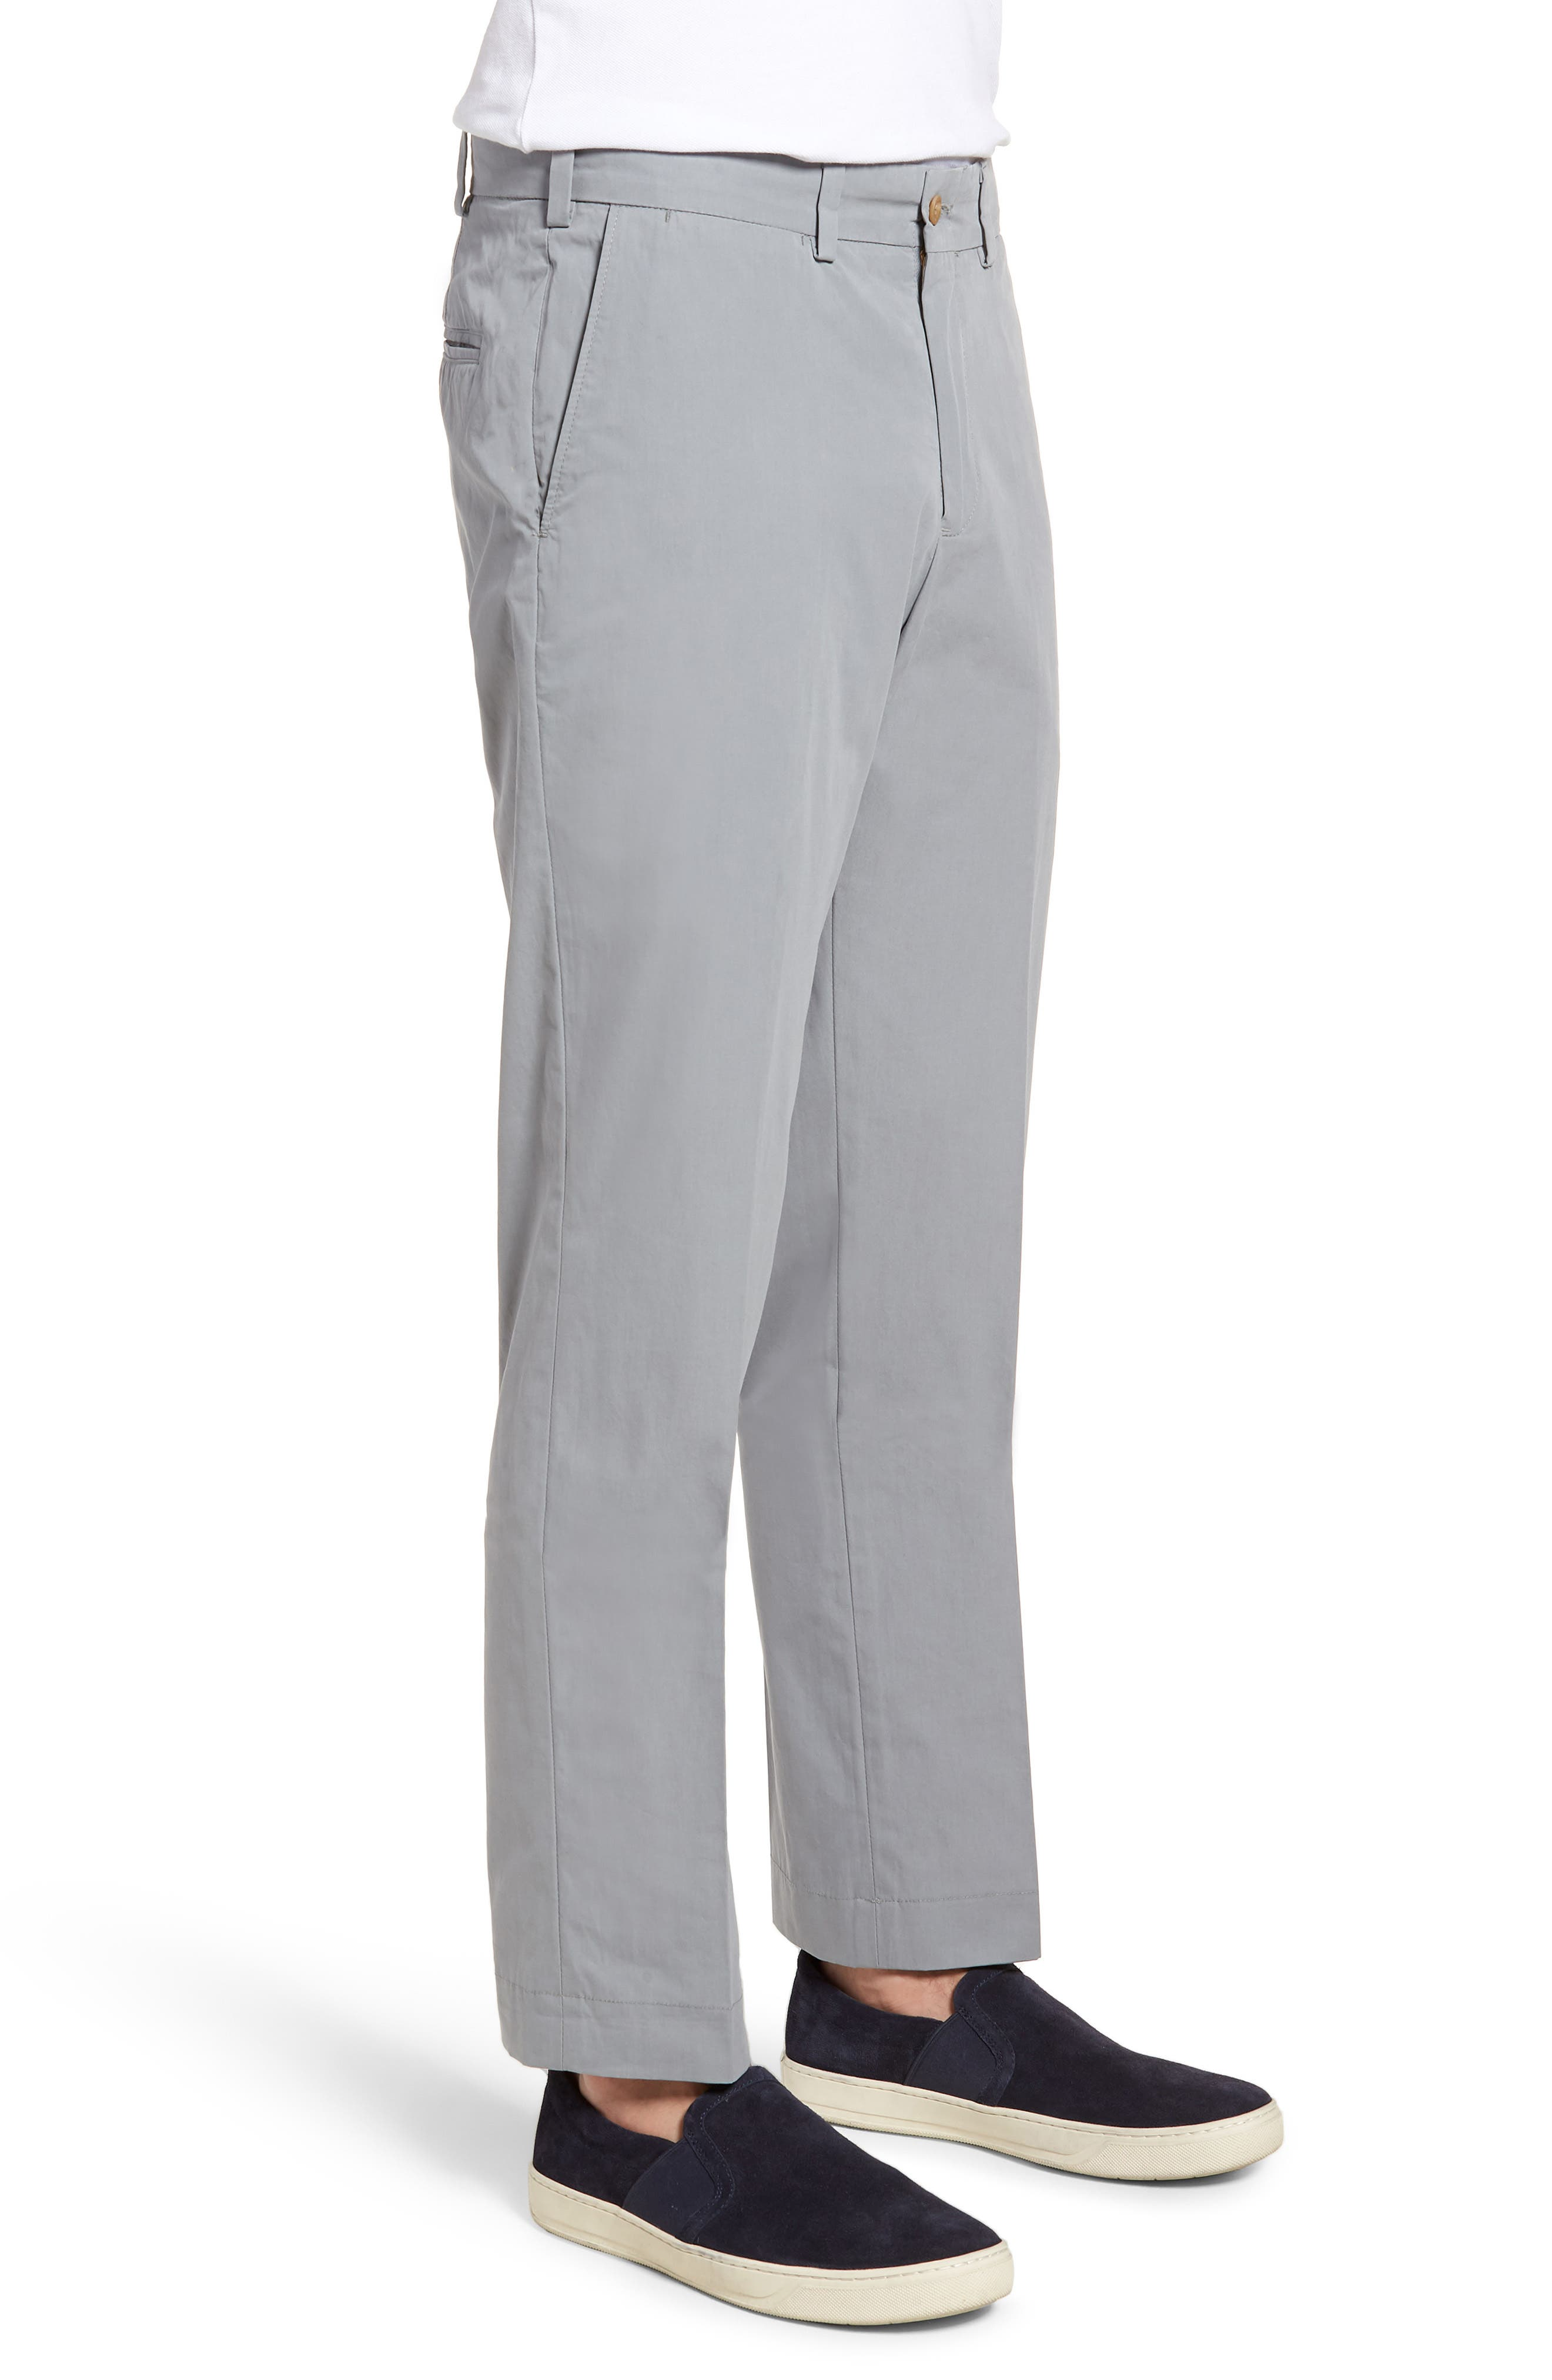 M3 Straight Fit Flat Front Tropical Poplin Pants,                             Alternate thumbnail 3, color,                             Nickel